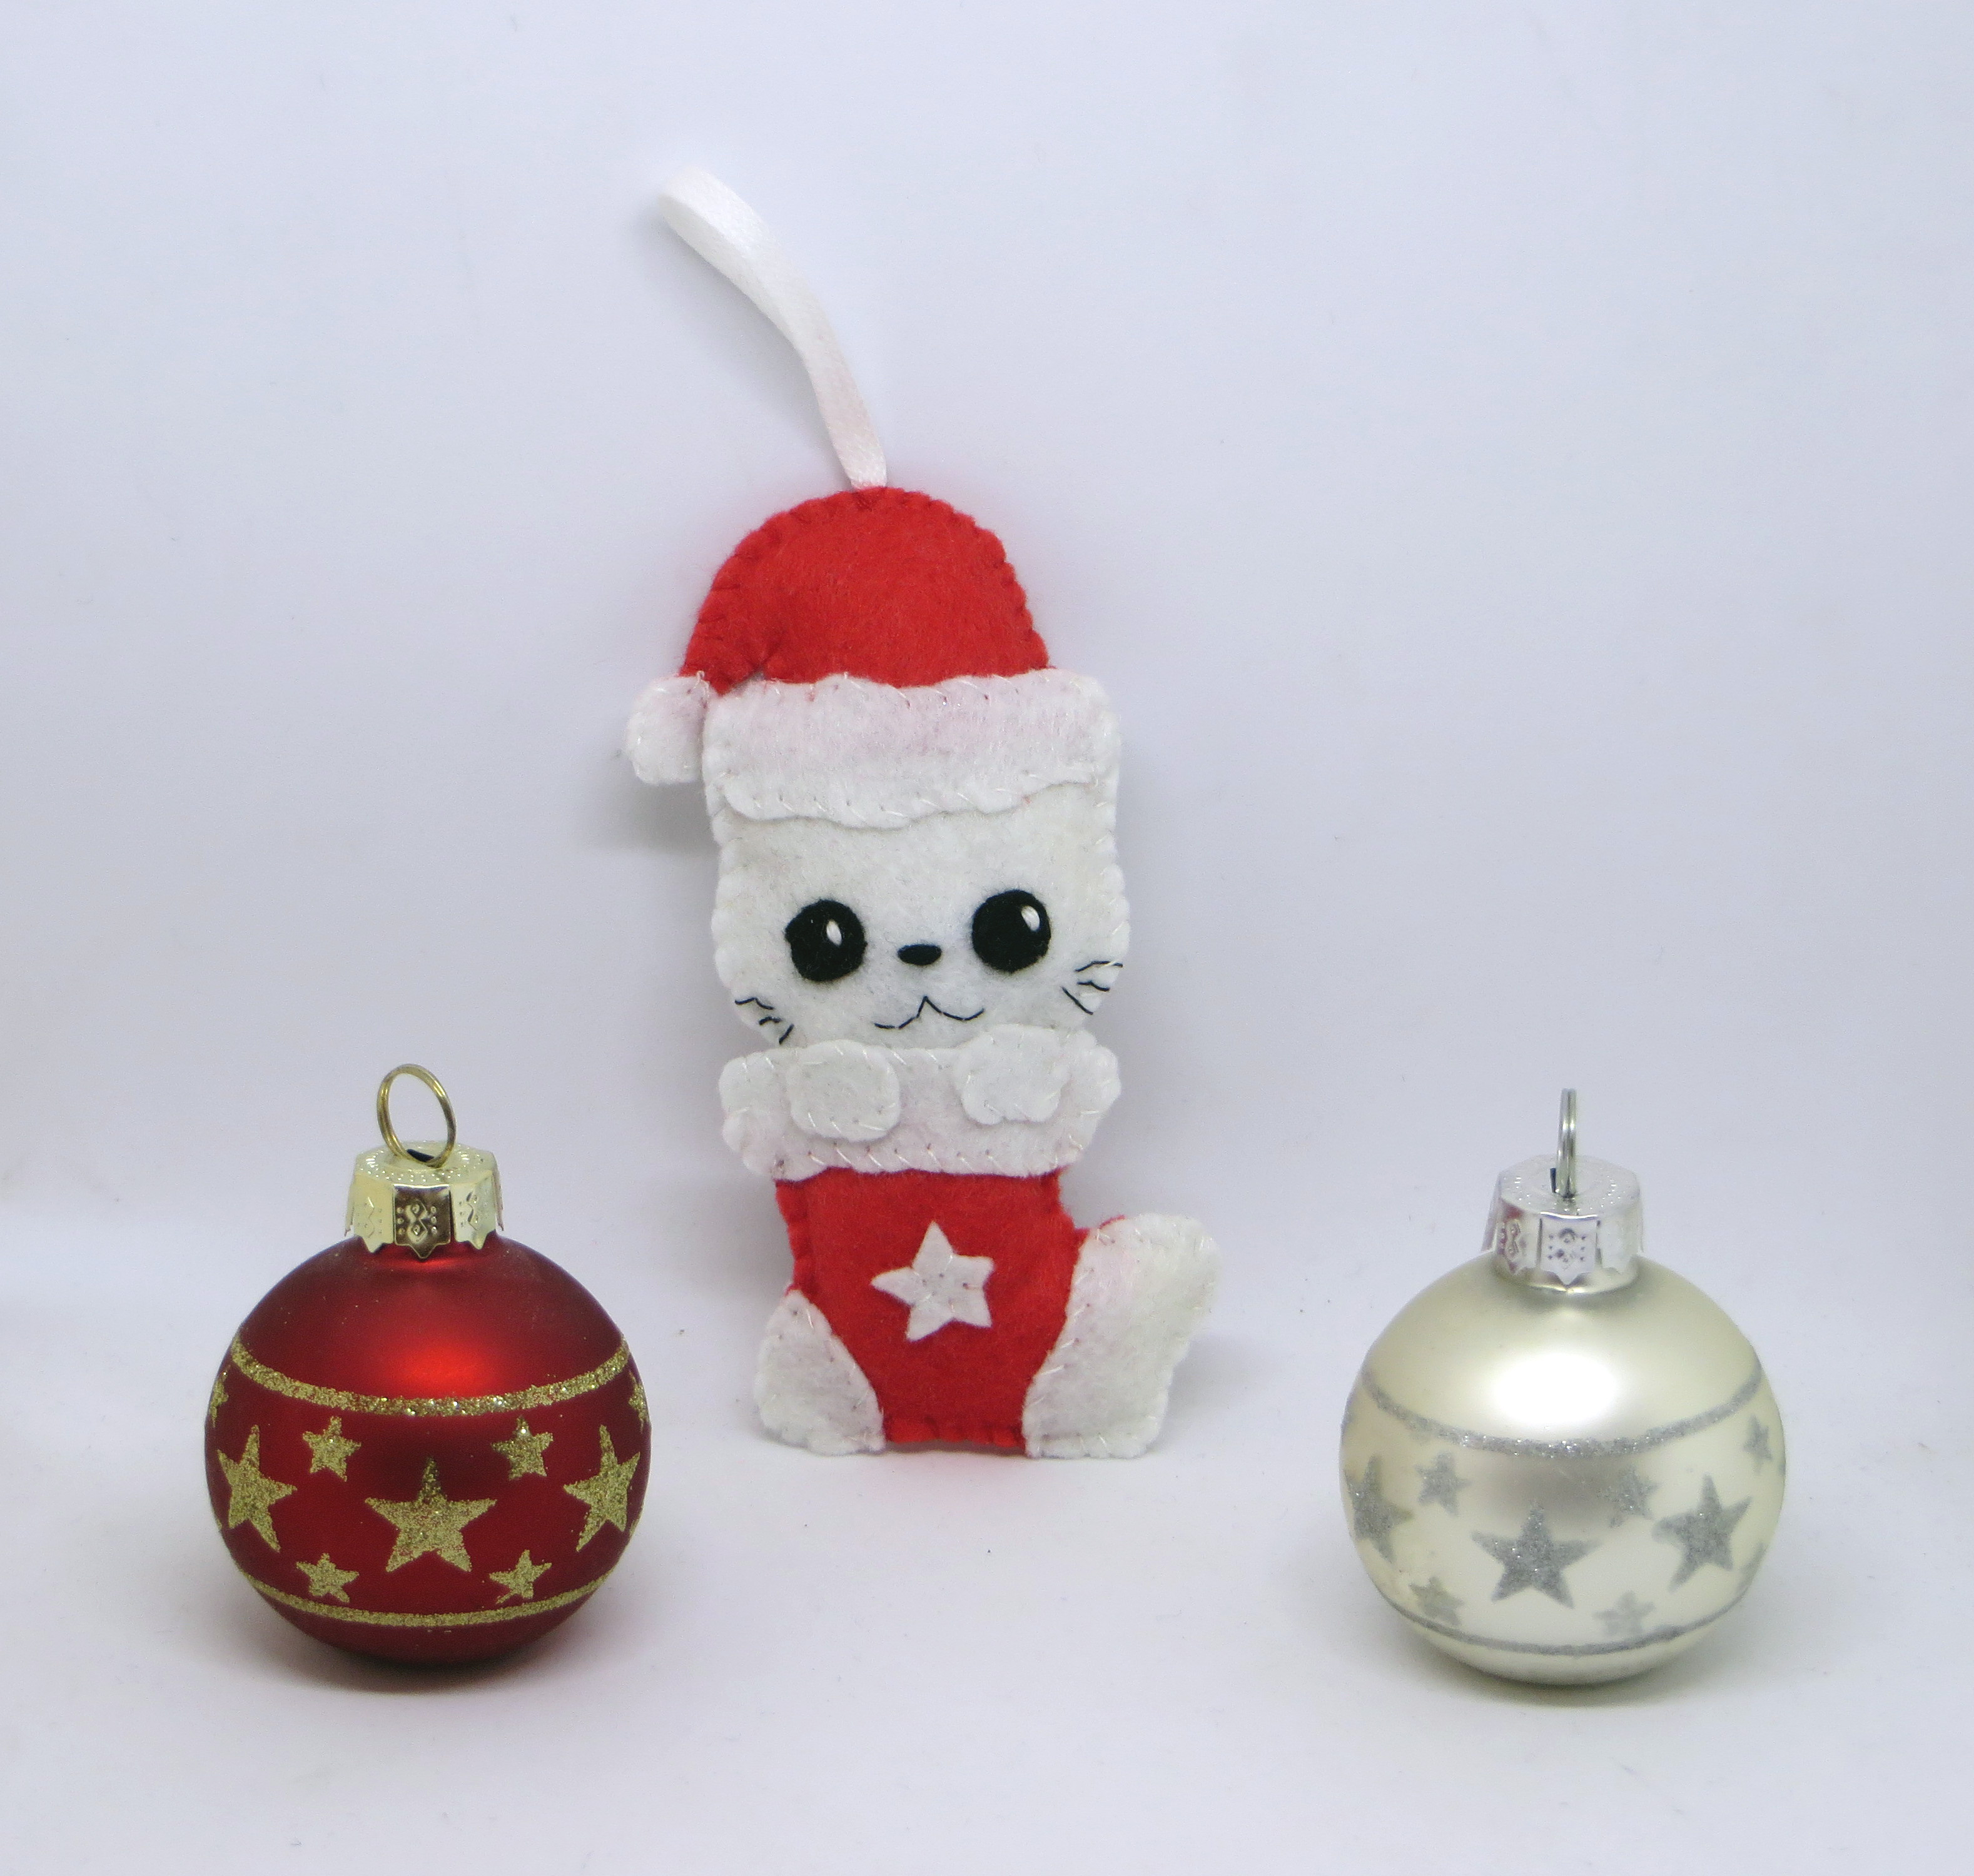 Decoration de noel chat chat kawaii deco noel decoration de noel boule de noel decoration - Decoration boule de noel ...